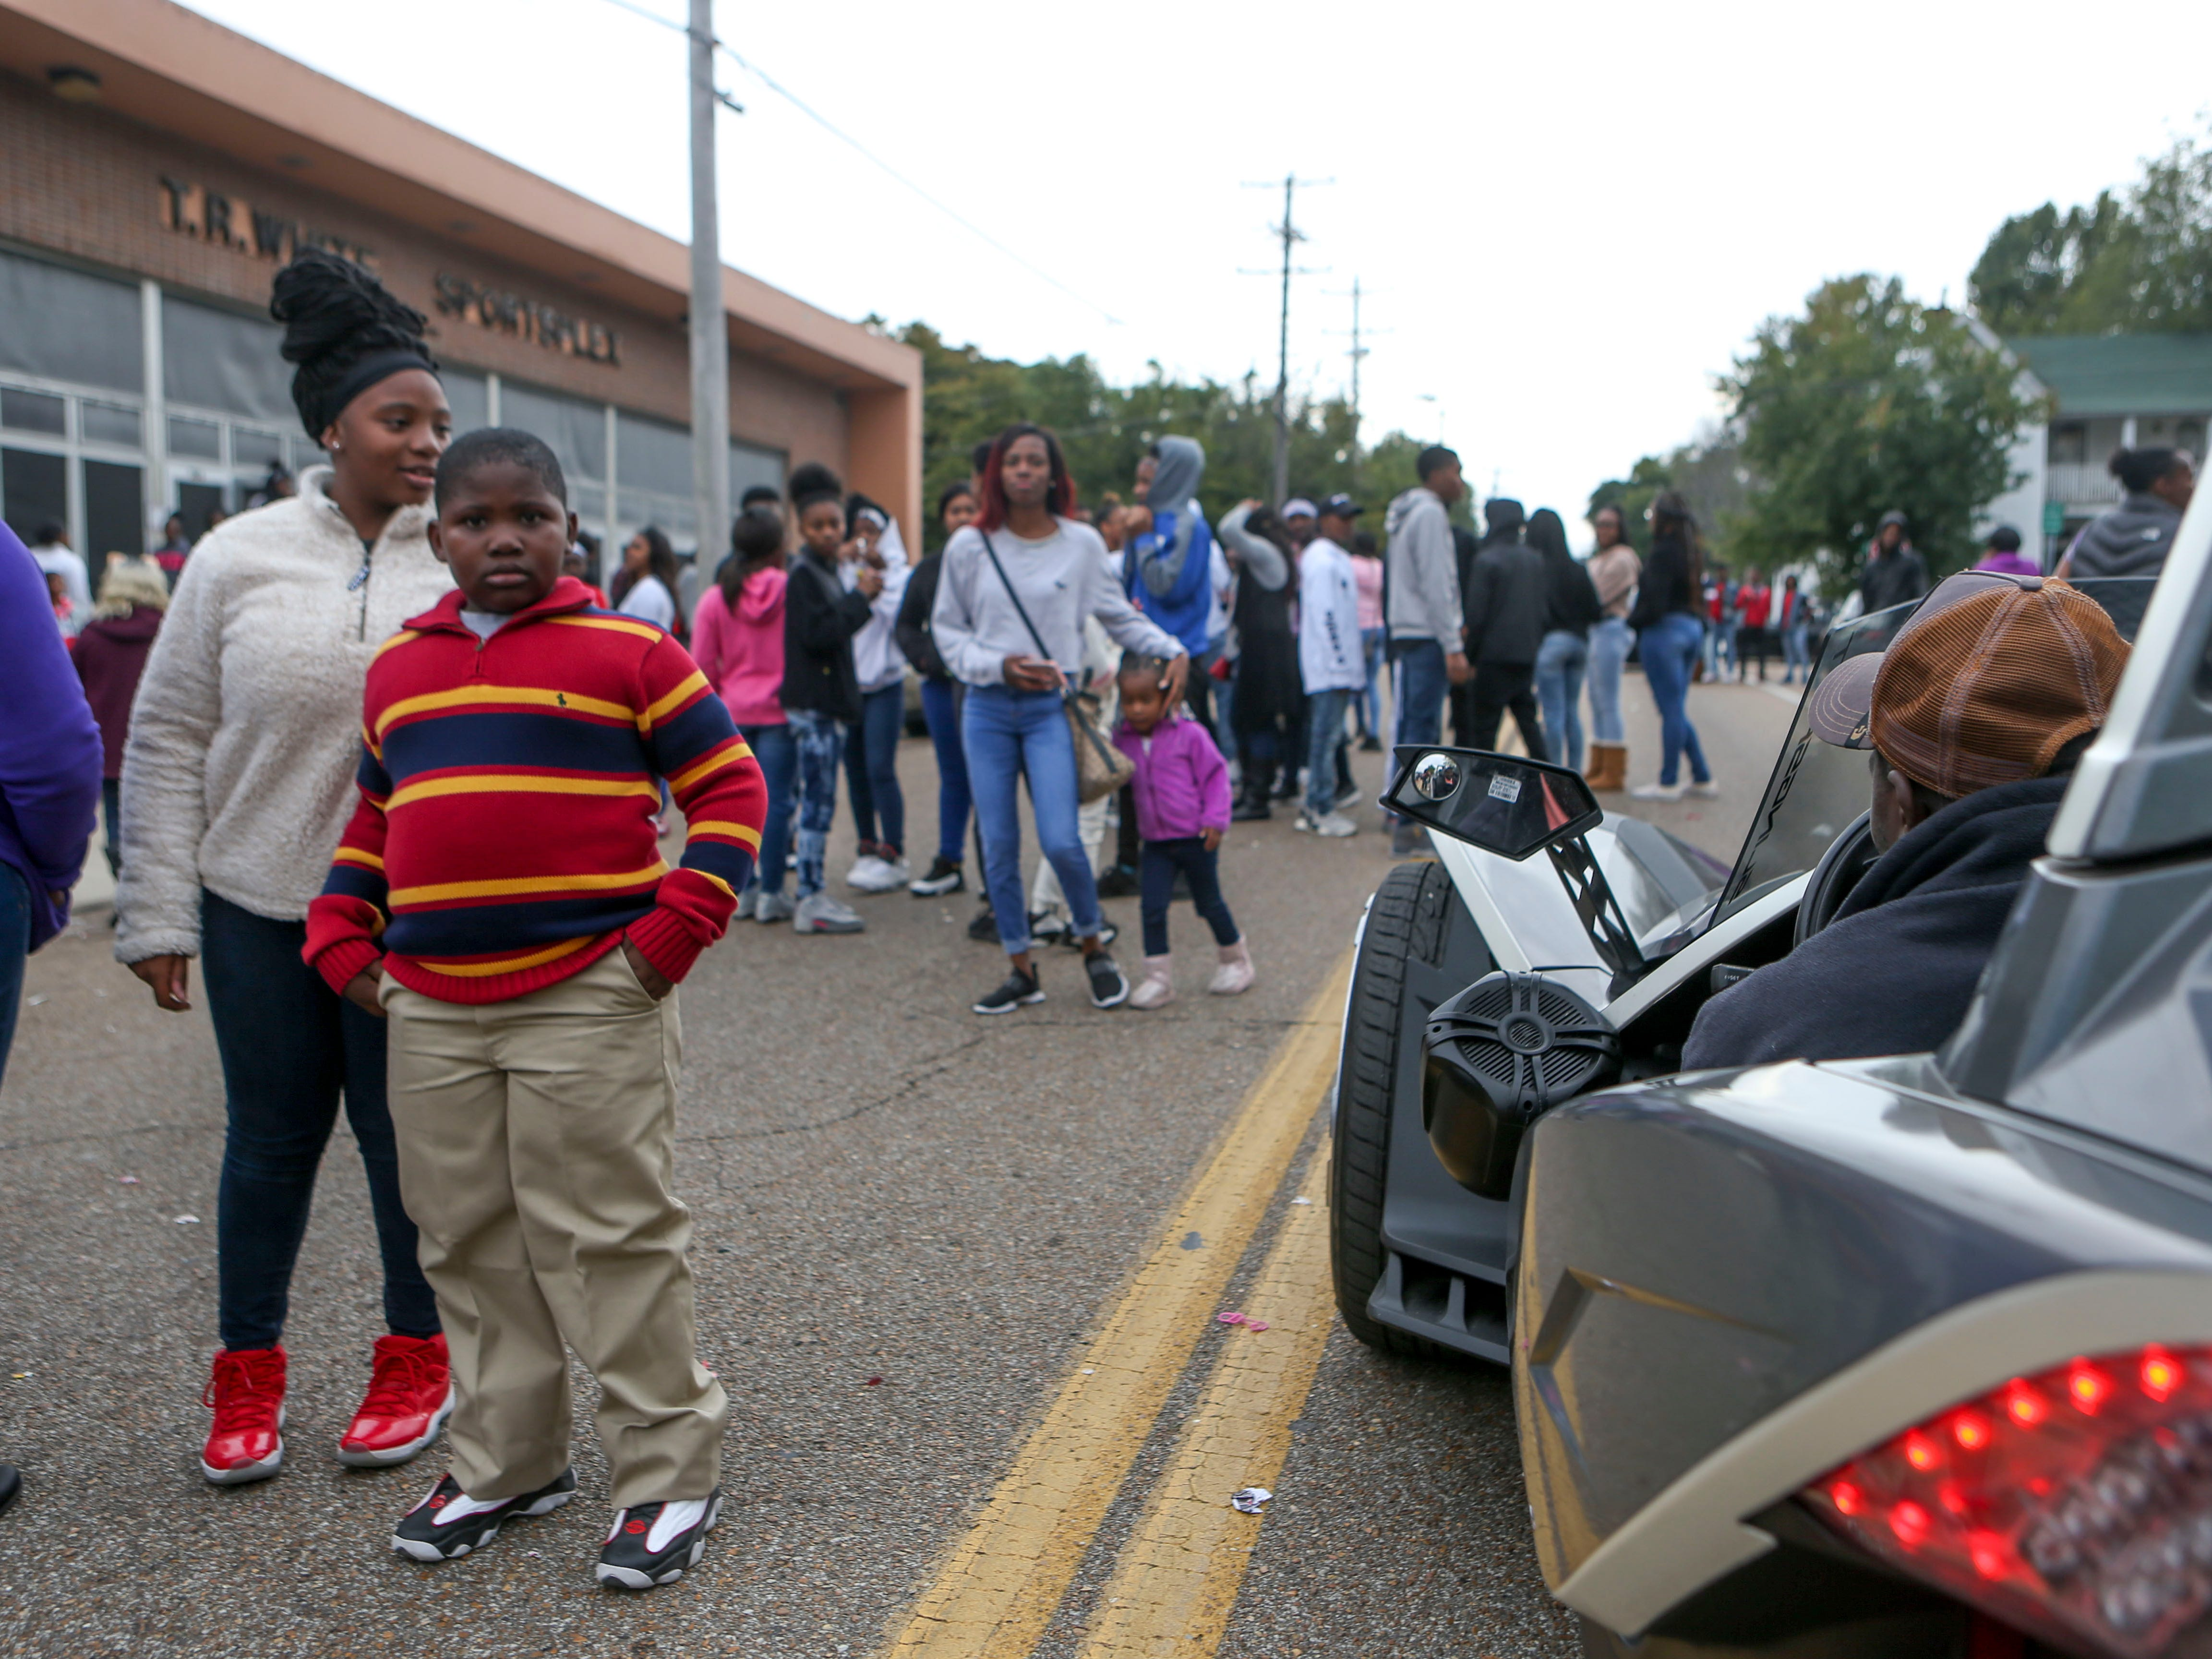 Folks hang out on Hayes Avenue and watch tricked out vehicles drive by at T.R. White Sportsplex in Jackson, Tenn., on Saturday, Oct. 13, 2018.